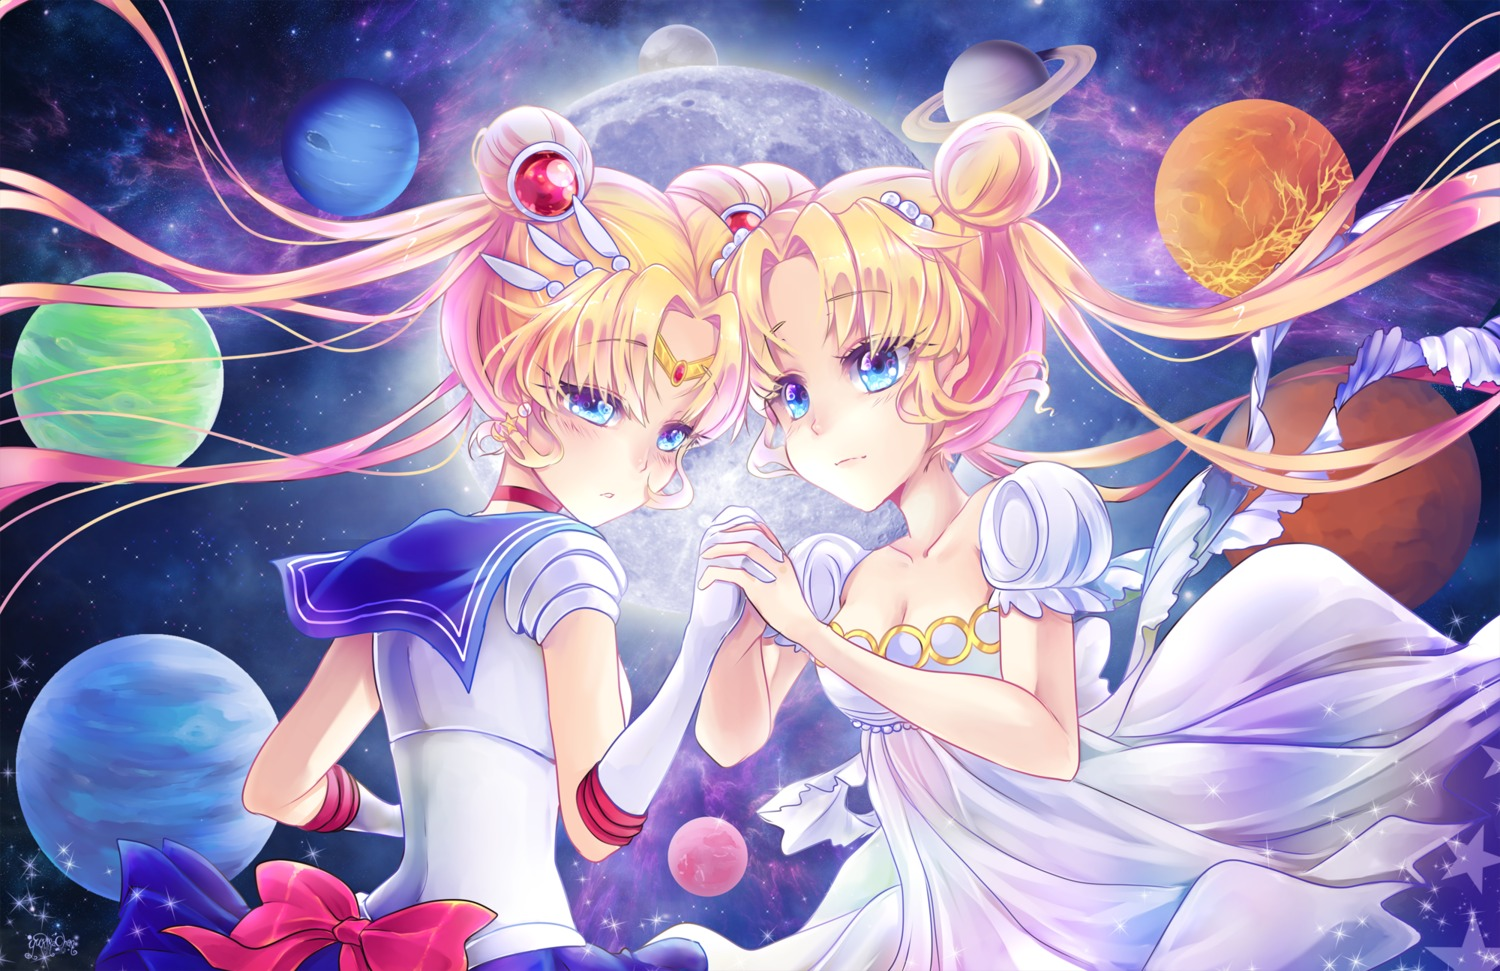 anime_wallpaper_Sailor_Moon_YukikaChanDA-191939.jpg